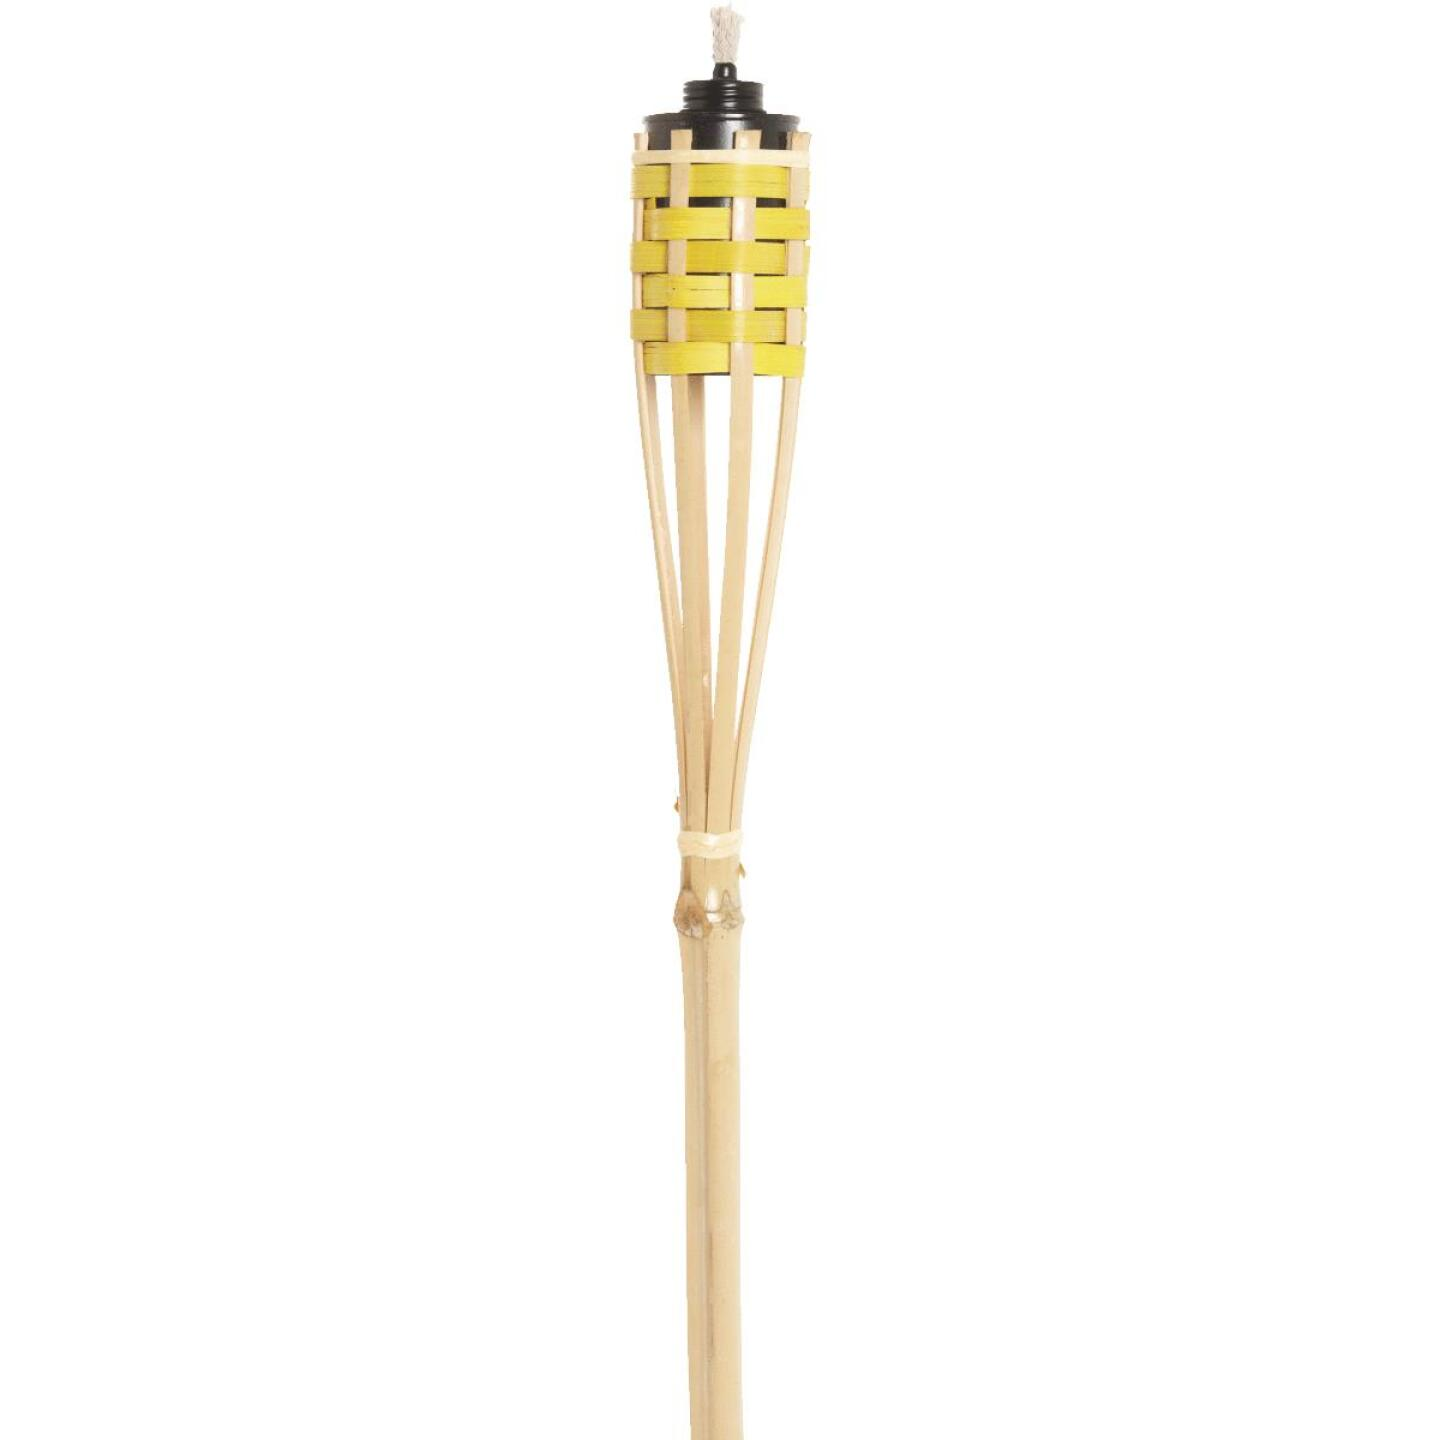 Outdoor Expressions 4 Ft. Assorted Color Bamboo Party Patio Torch Image 5